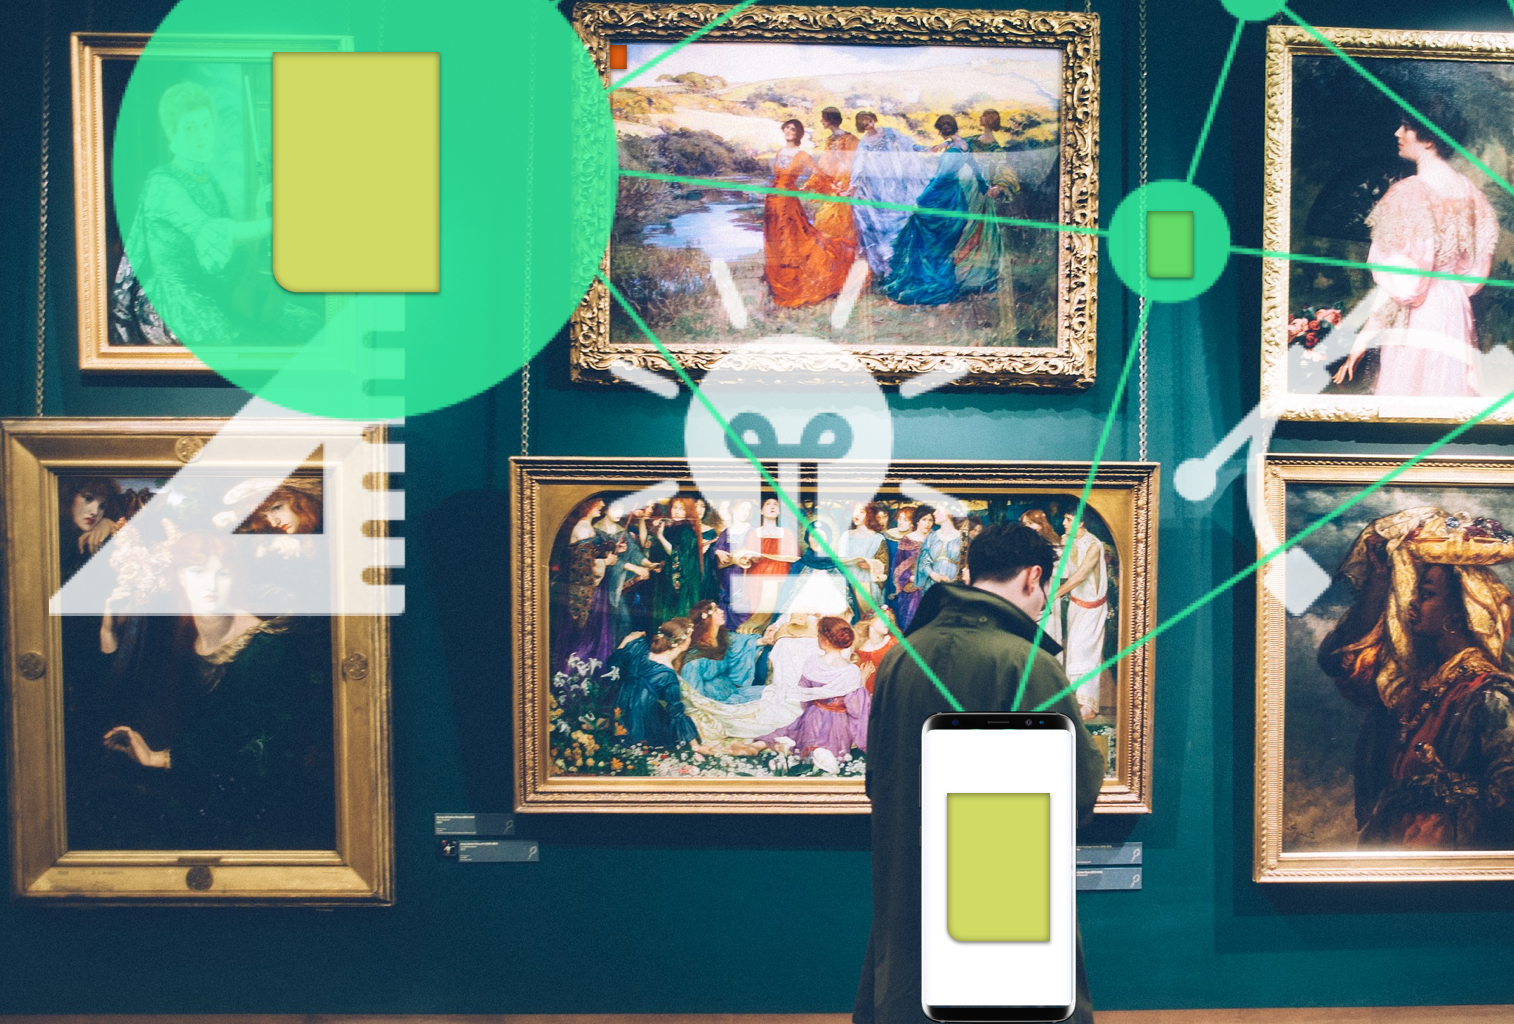 Onlive is designed to adapt to every situation we are in. If we would be in a museum it could capture the information and functionality in Onlive Cards and offer them to their visitors when they enjoy the artworks. In theory, every artwork could contain an Onlive Card.